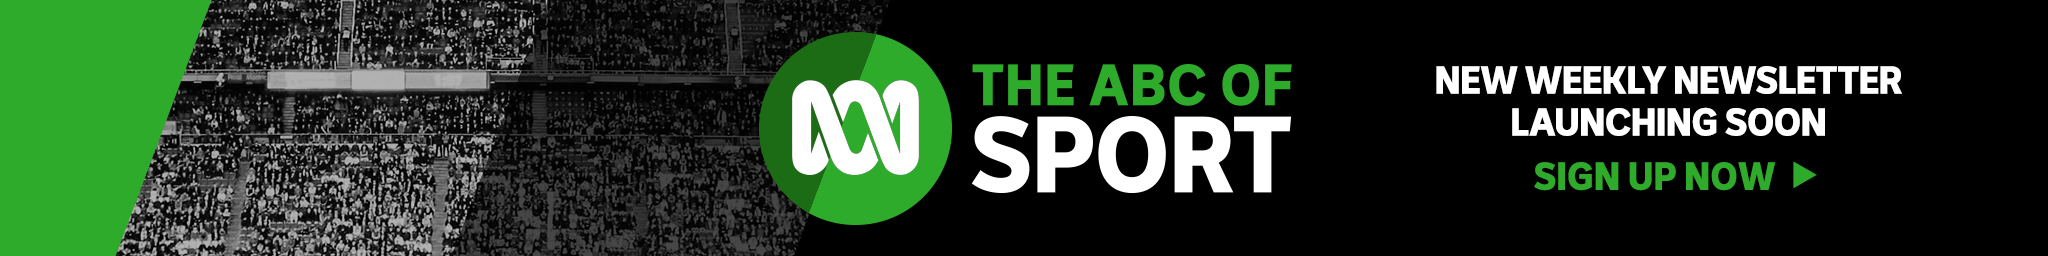 The ABC of Sport. New weekly newsletter launching soon. Sign-up now